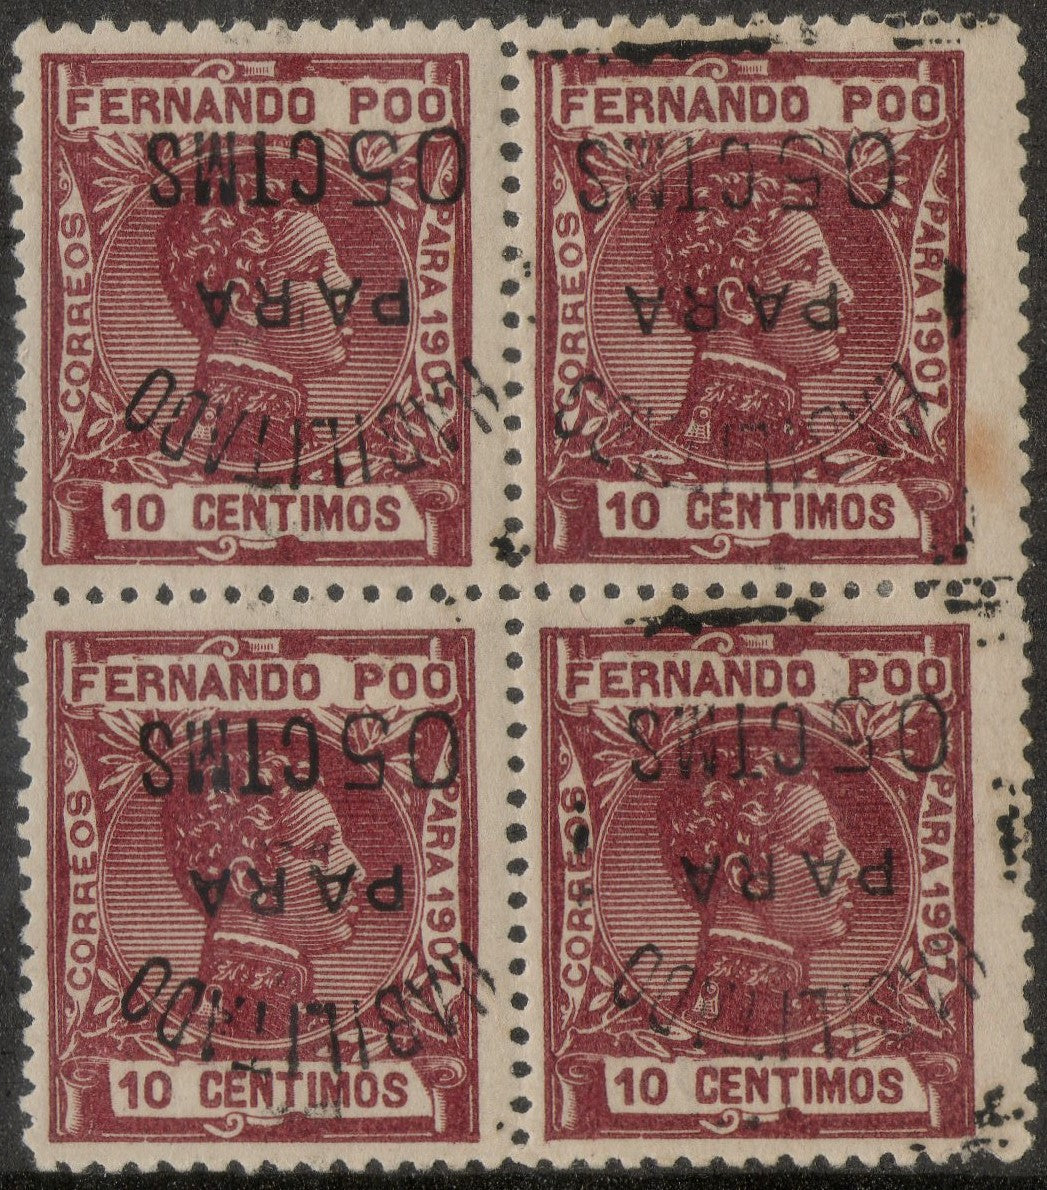 Fernando POO #168, Inverted Overprint, Block of 4